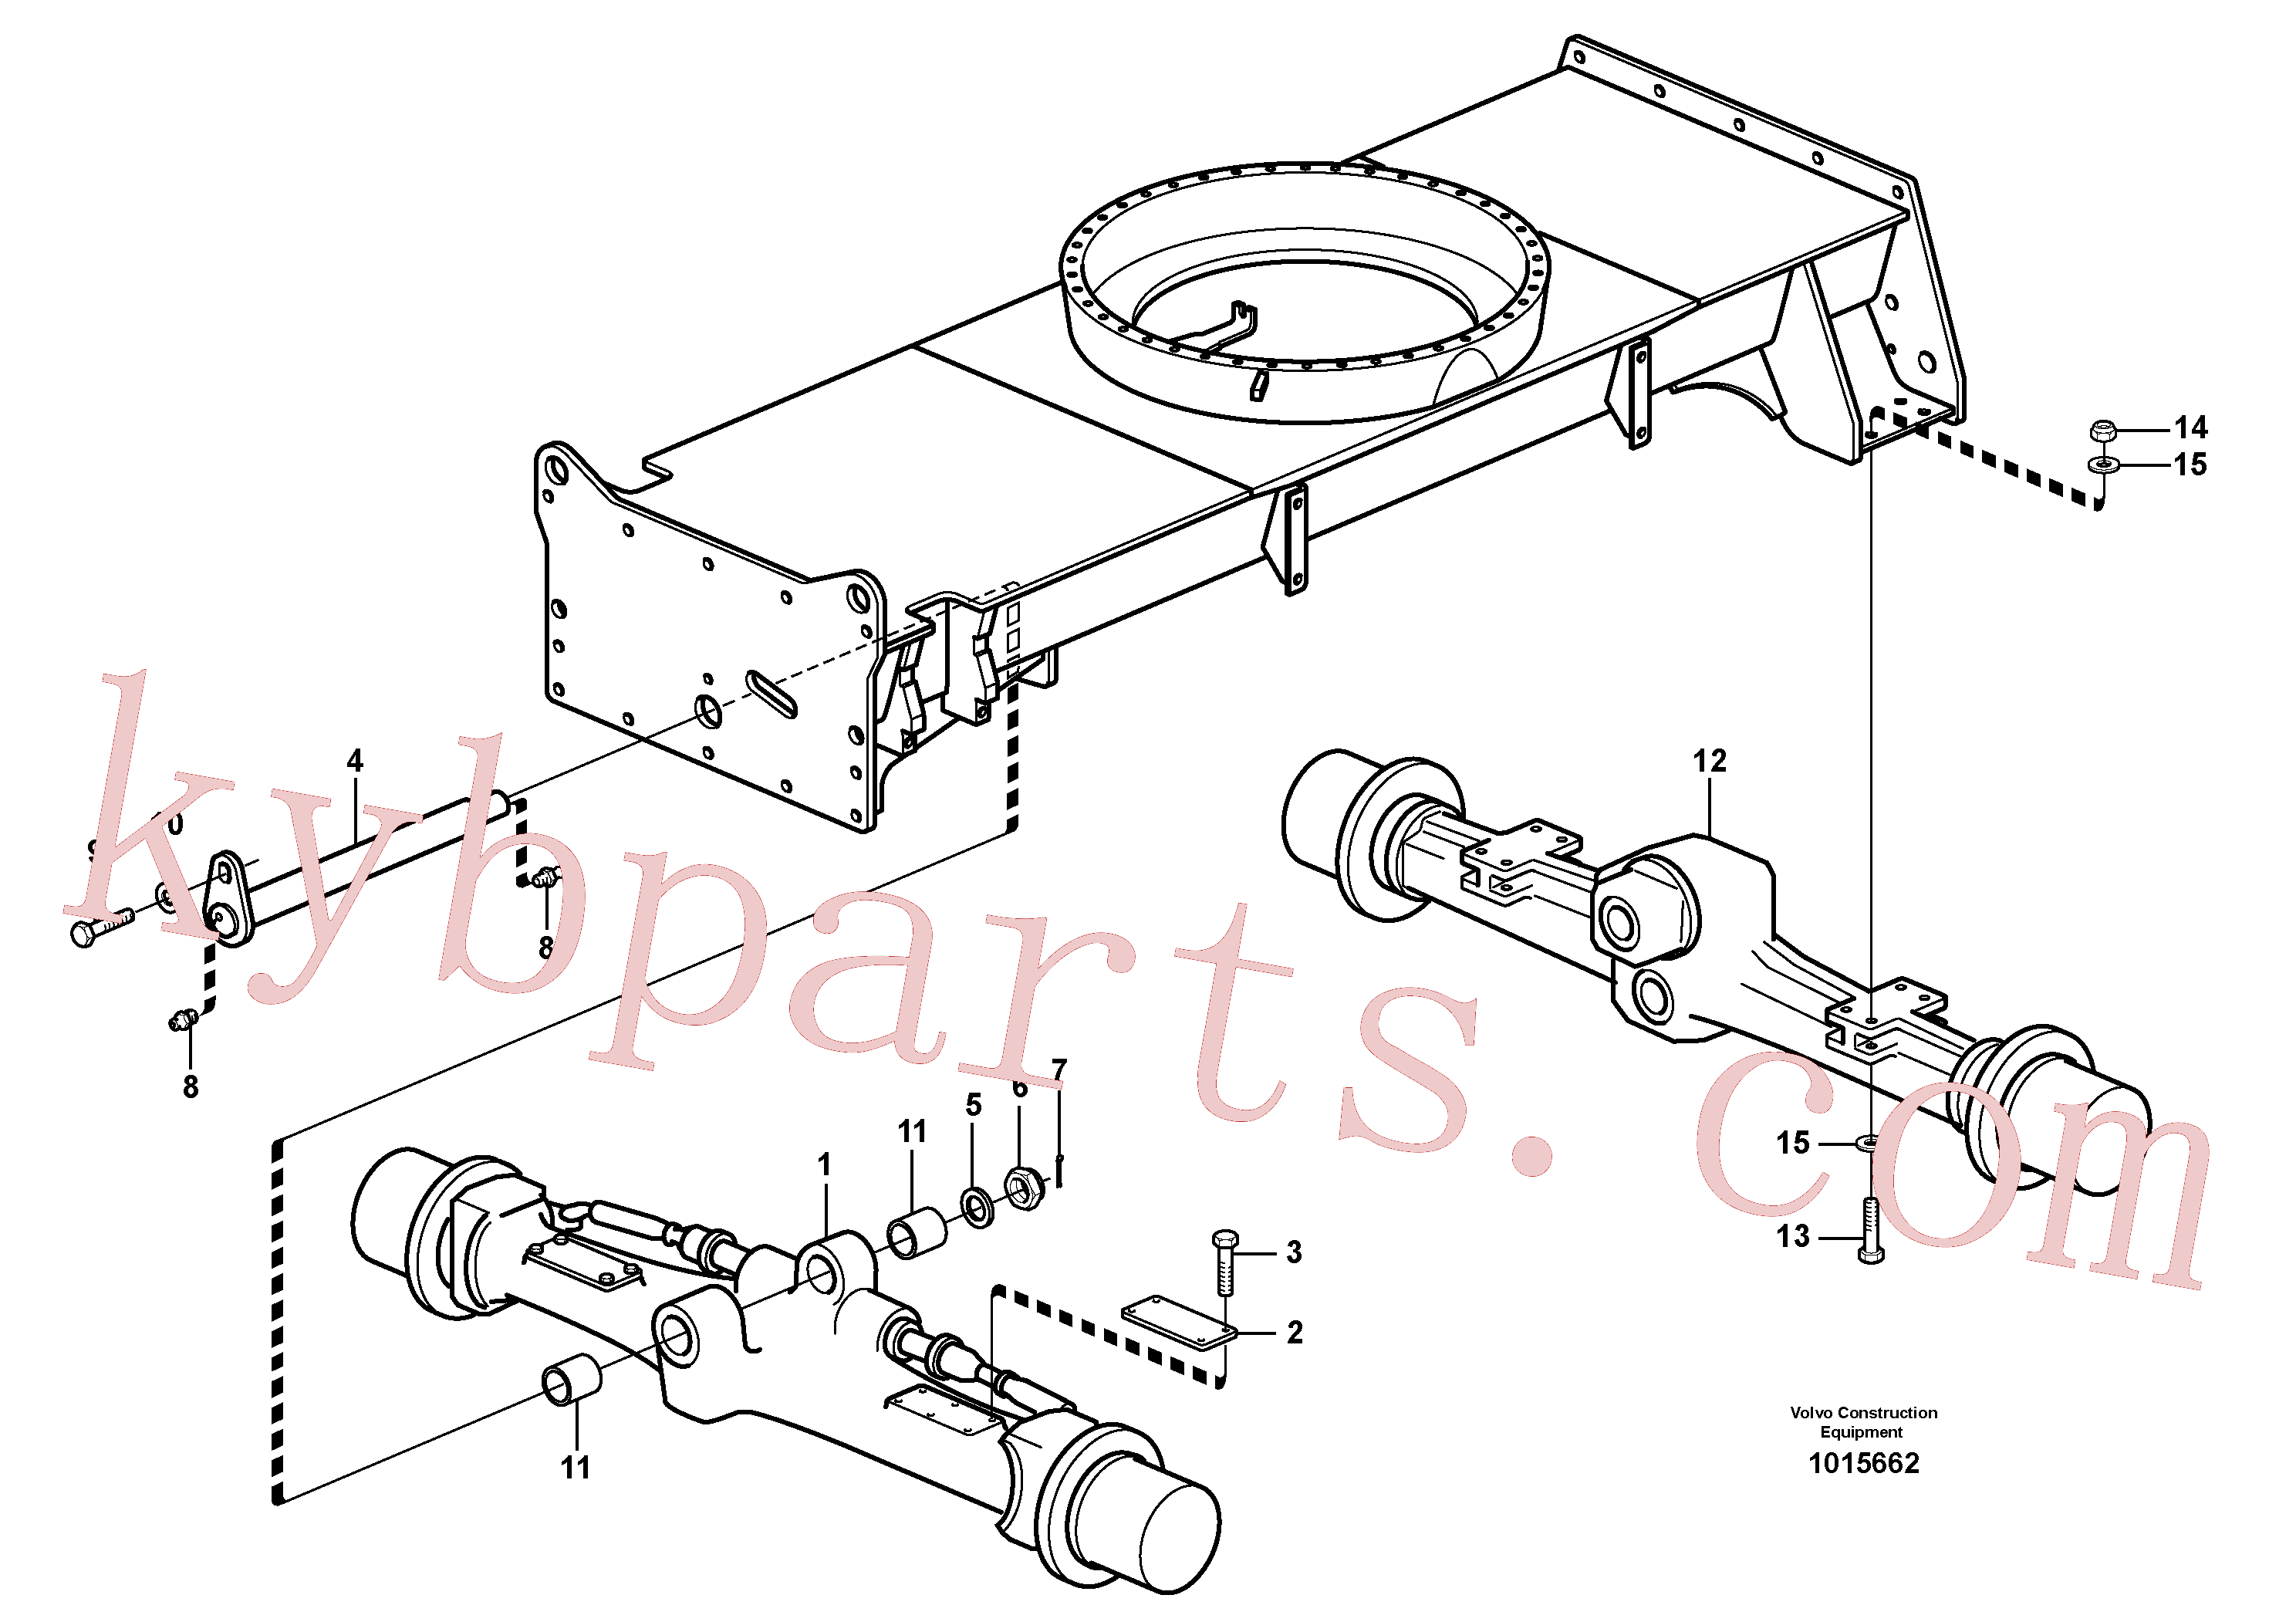 VOE982489 for Volvo Planet axles with fitting parts(1015662 assembly)